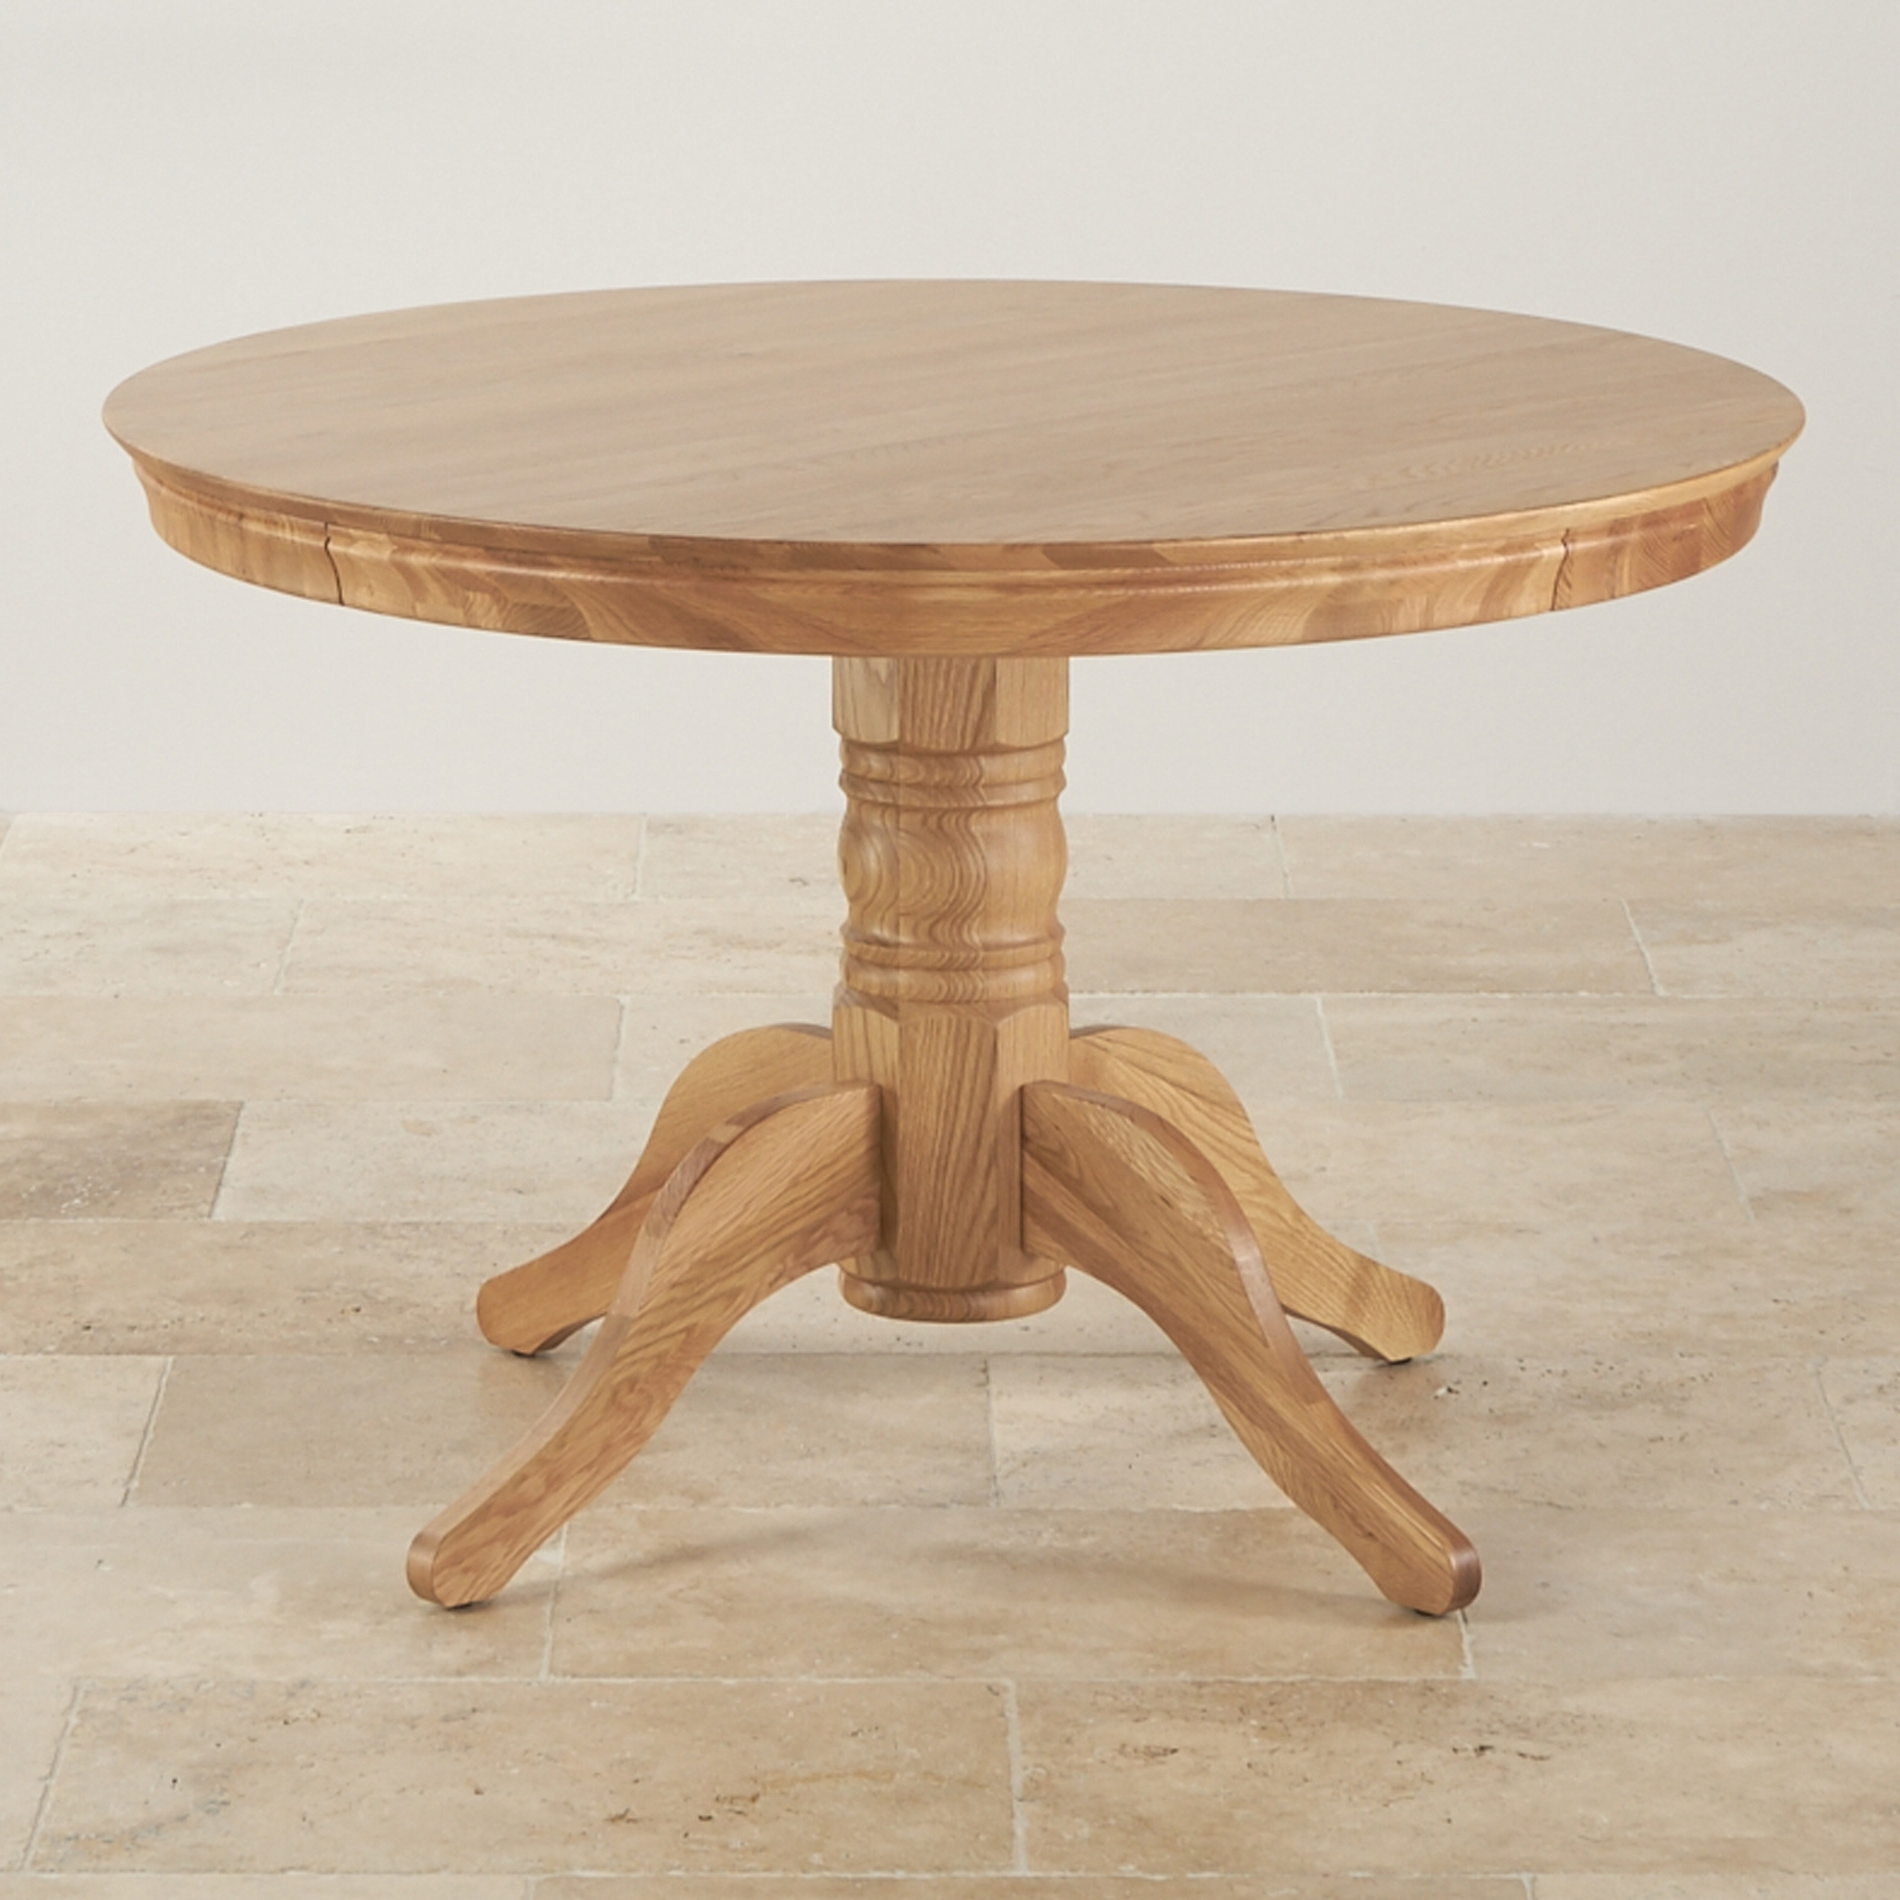 Fashionable Circular Oak Dining Tables With Regard To Qualities Of Oak Dining Tables – Home Decor Ideas (View 16 of 25)